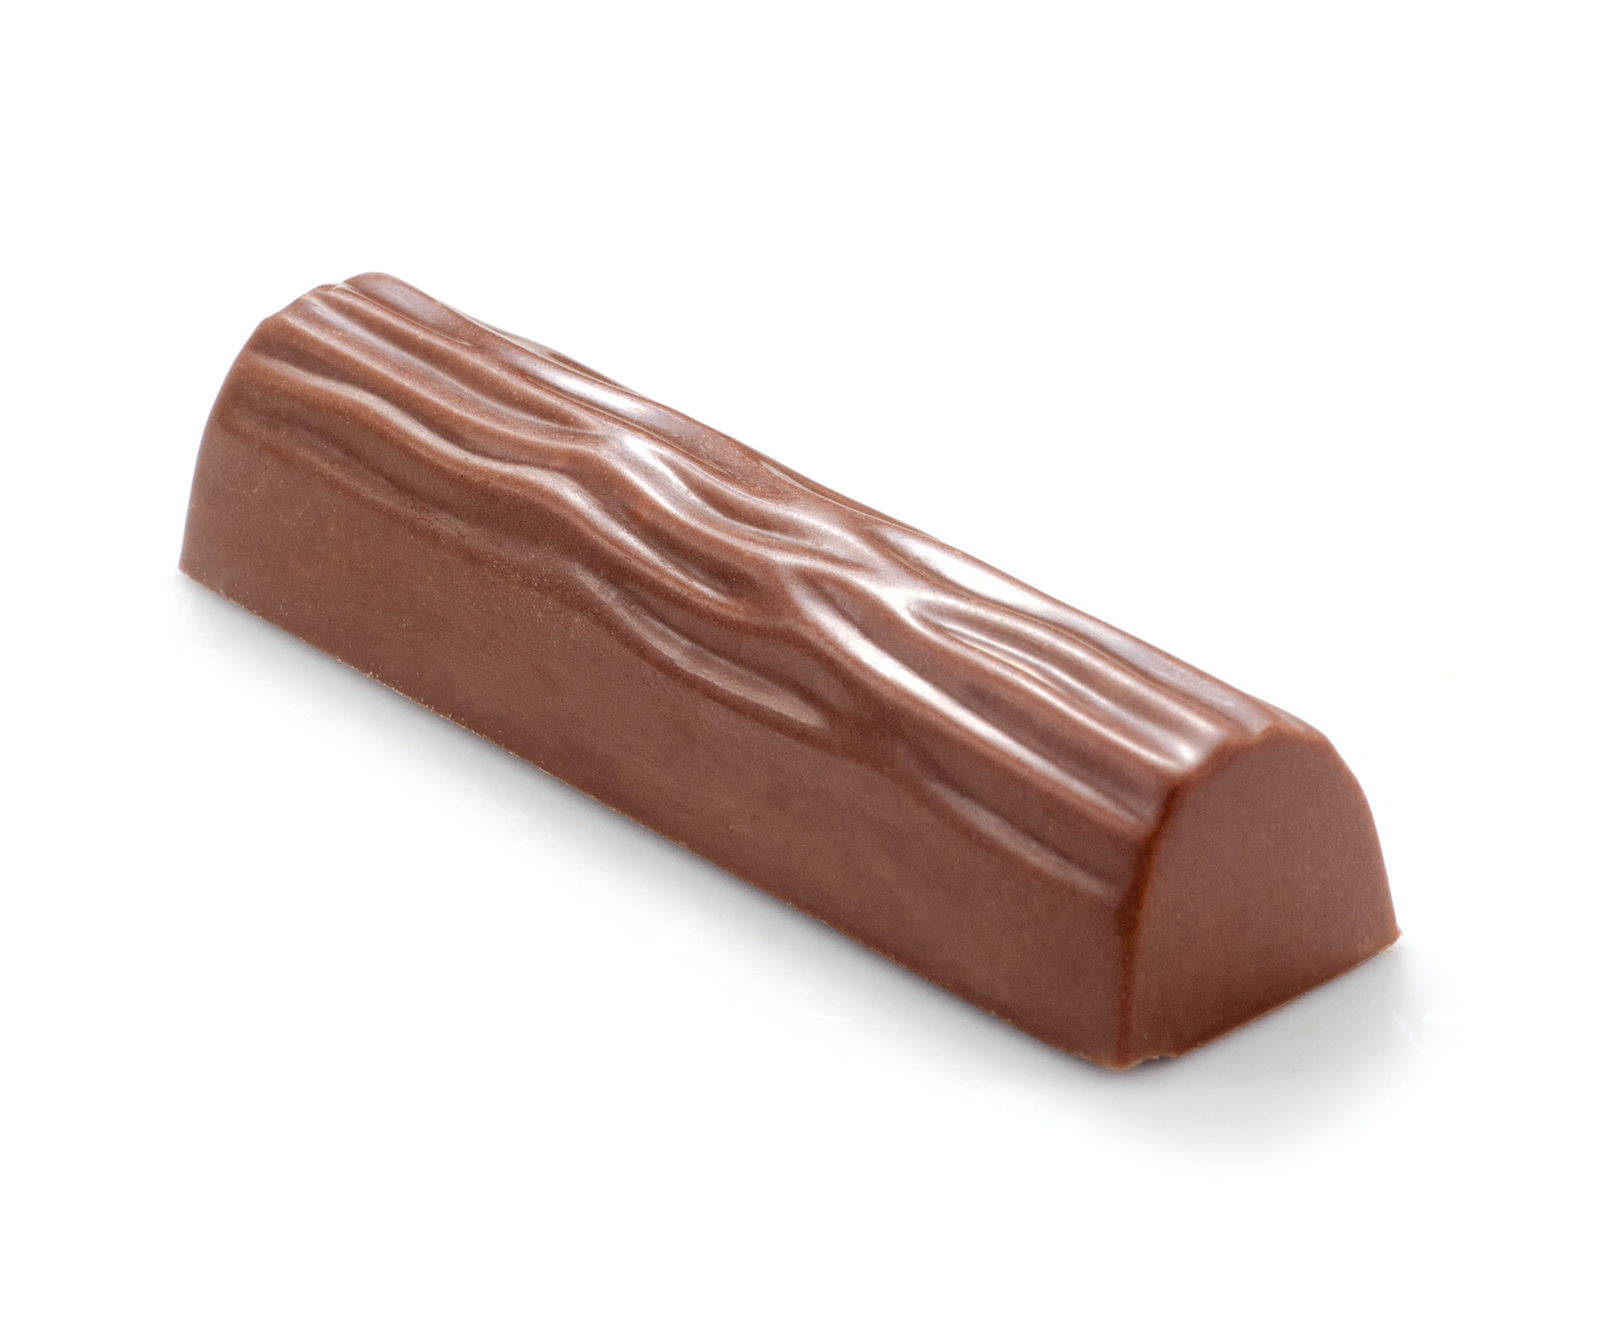 <b>BOWRA LOG</b><P ALIGN=Left>Milk chocolate casing filled with milk chocolate hazelnut praline</P>